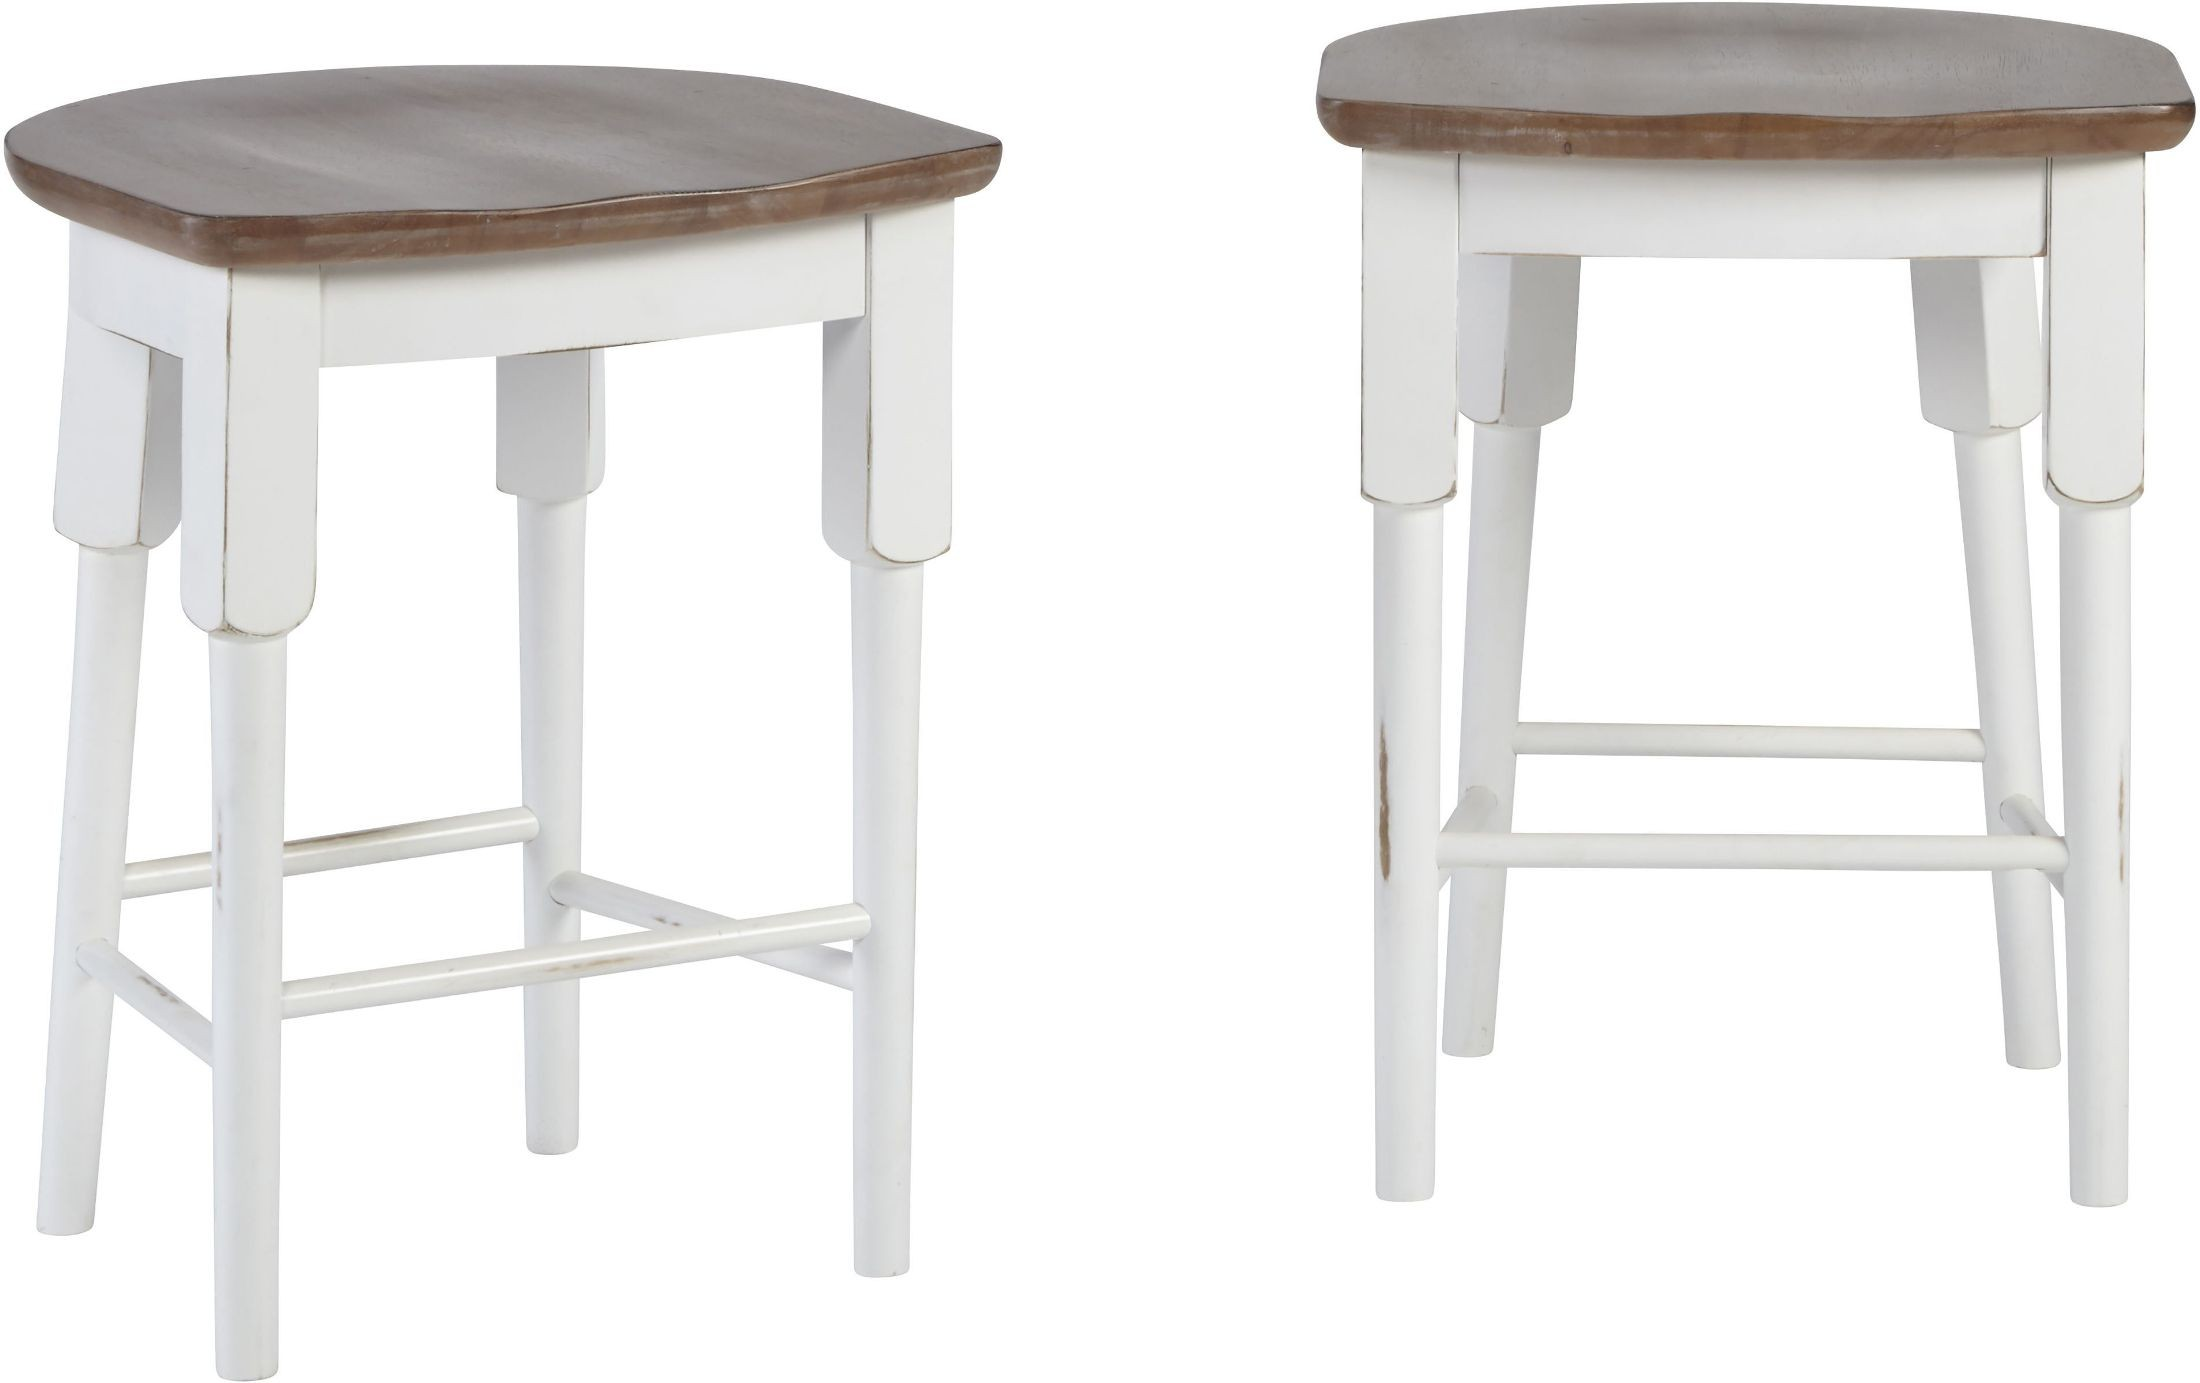 Peachy Shutters Light Oak And Distressed White Counter Stool Set Of 2 Dailytribune Chair Design For Home Dailytribuneorg